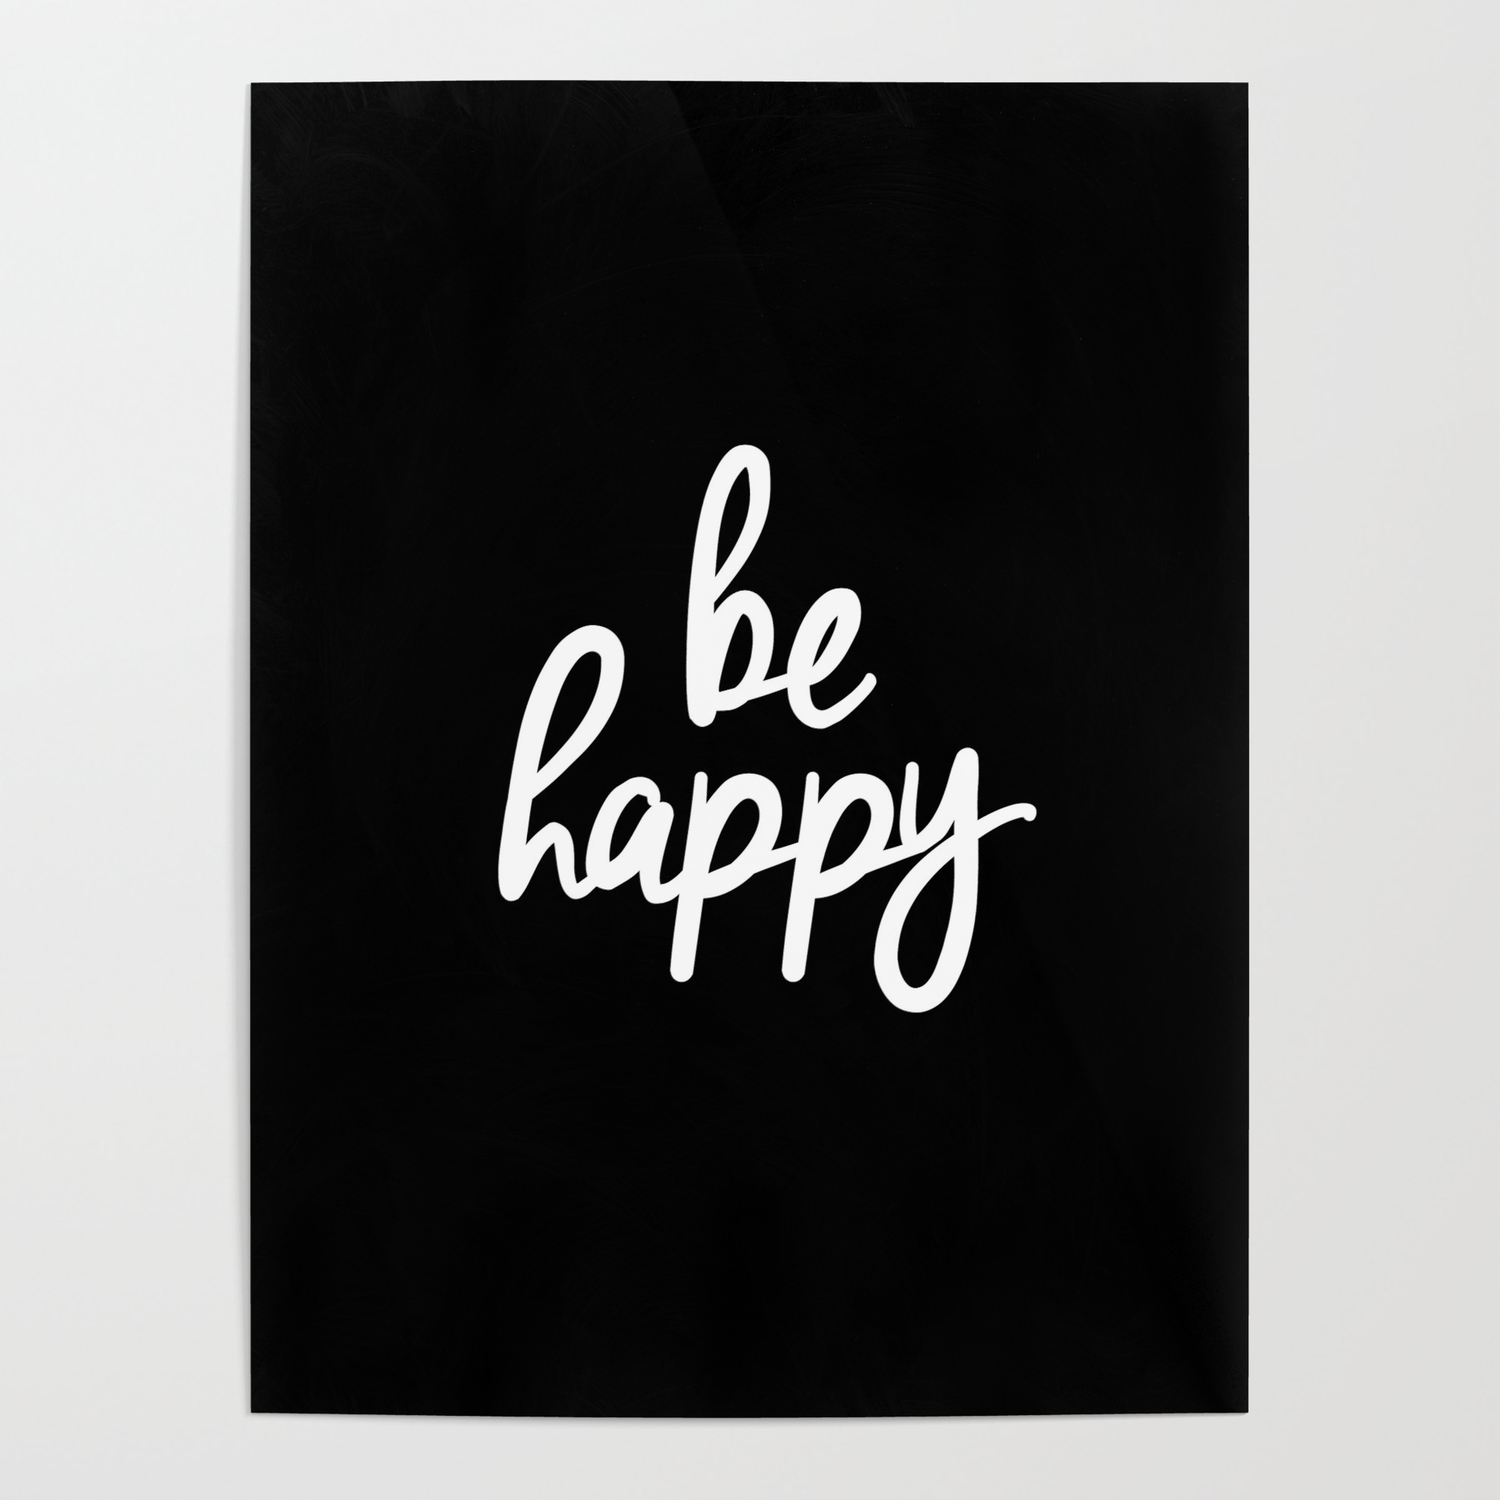 Be happy black and white short inspirational quotes pursuit of happiness quote daily inspo poster